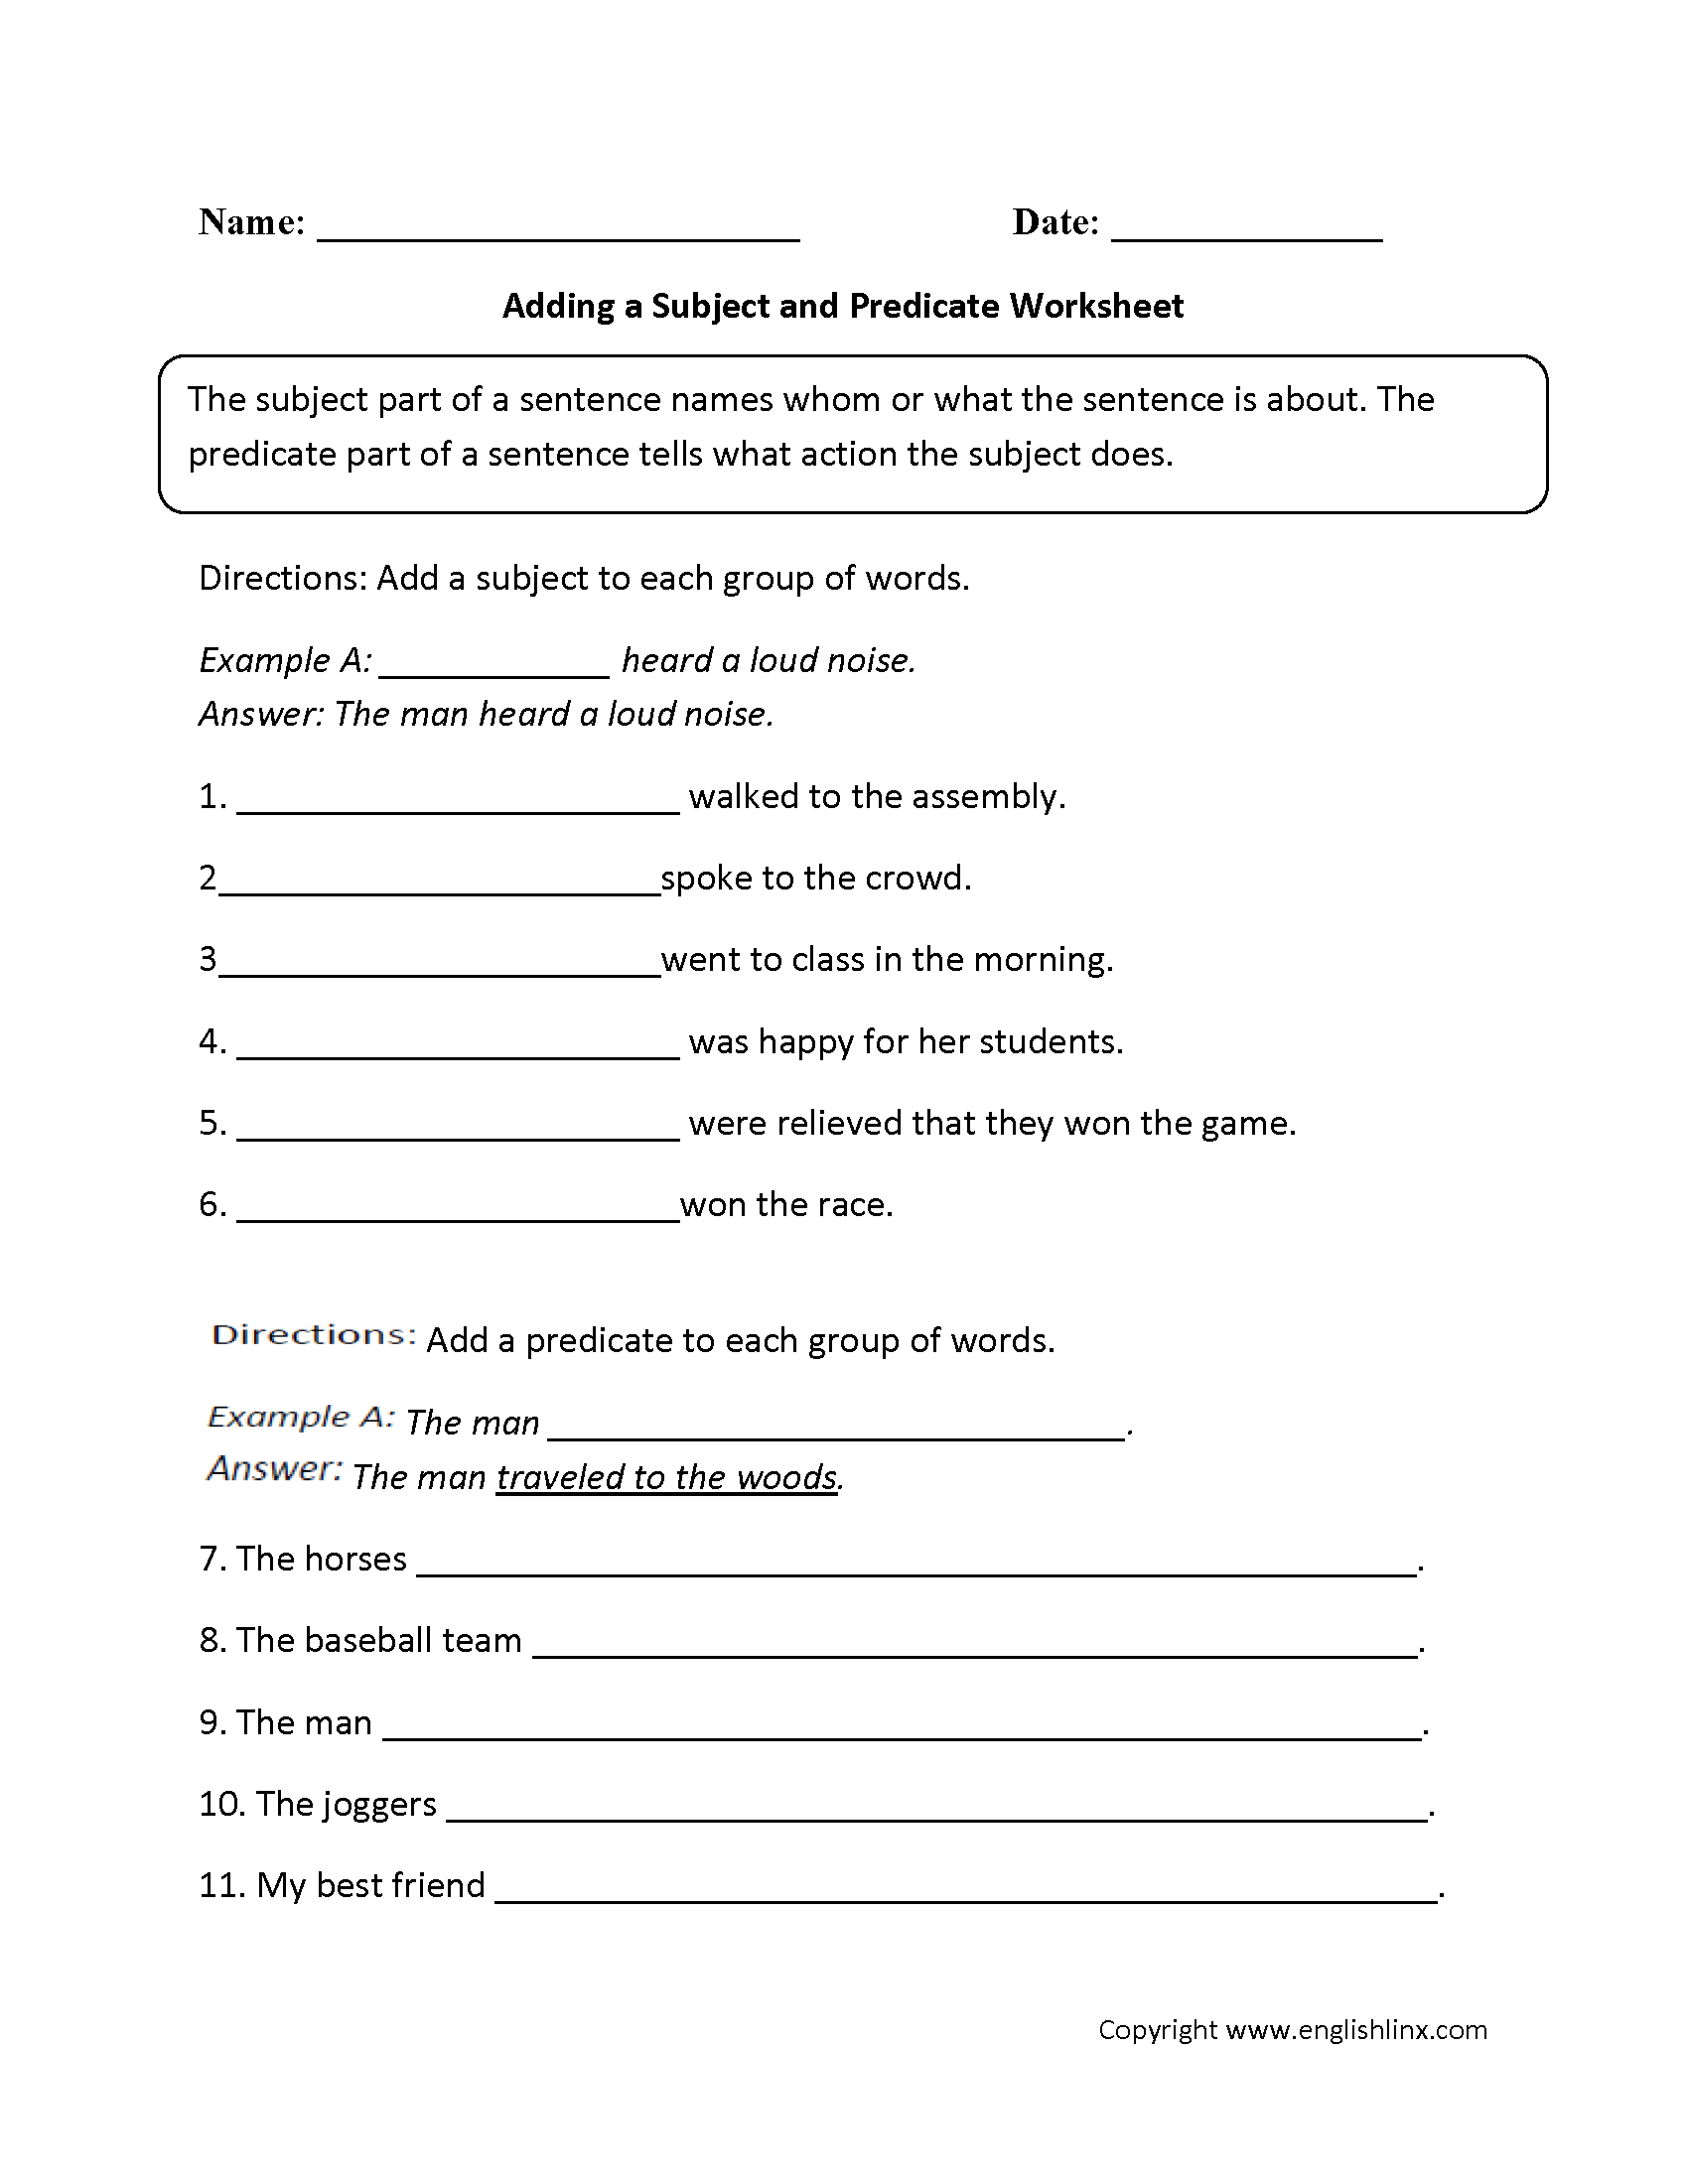 worksheet 6 Grade Worksheets adding a subject and predicate worksheet englishlinx com board these worksheets are great for working with use worksheet